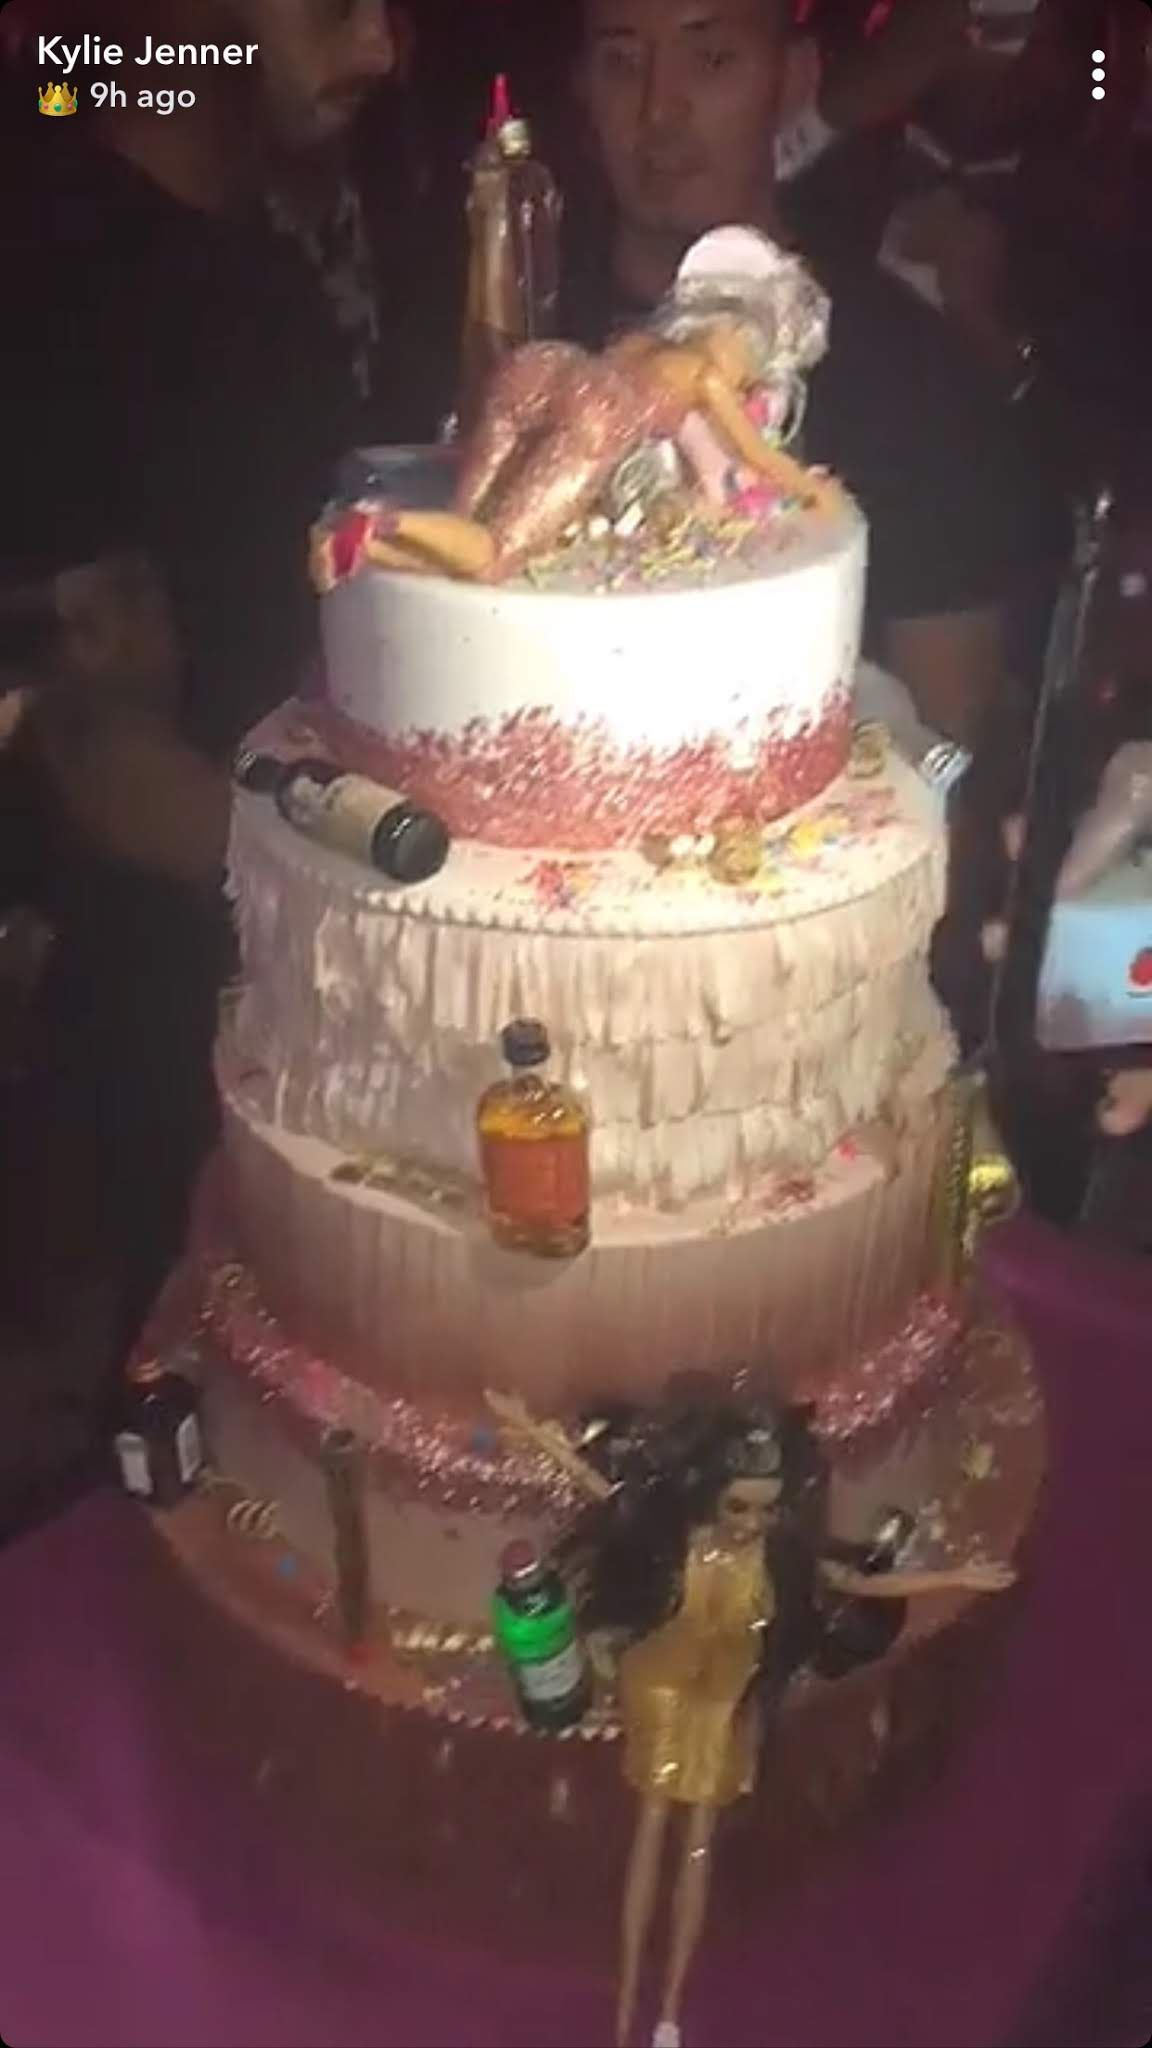 35 Best Kardashian Cakes All The Kardashian And Jenner Birthday Cakes